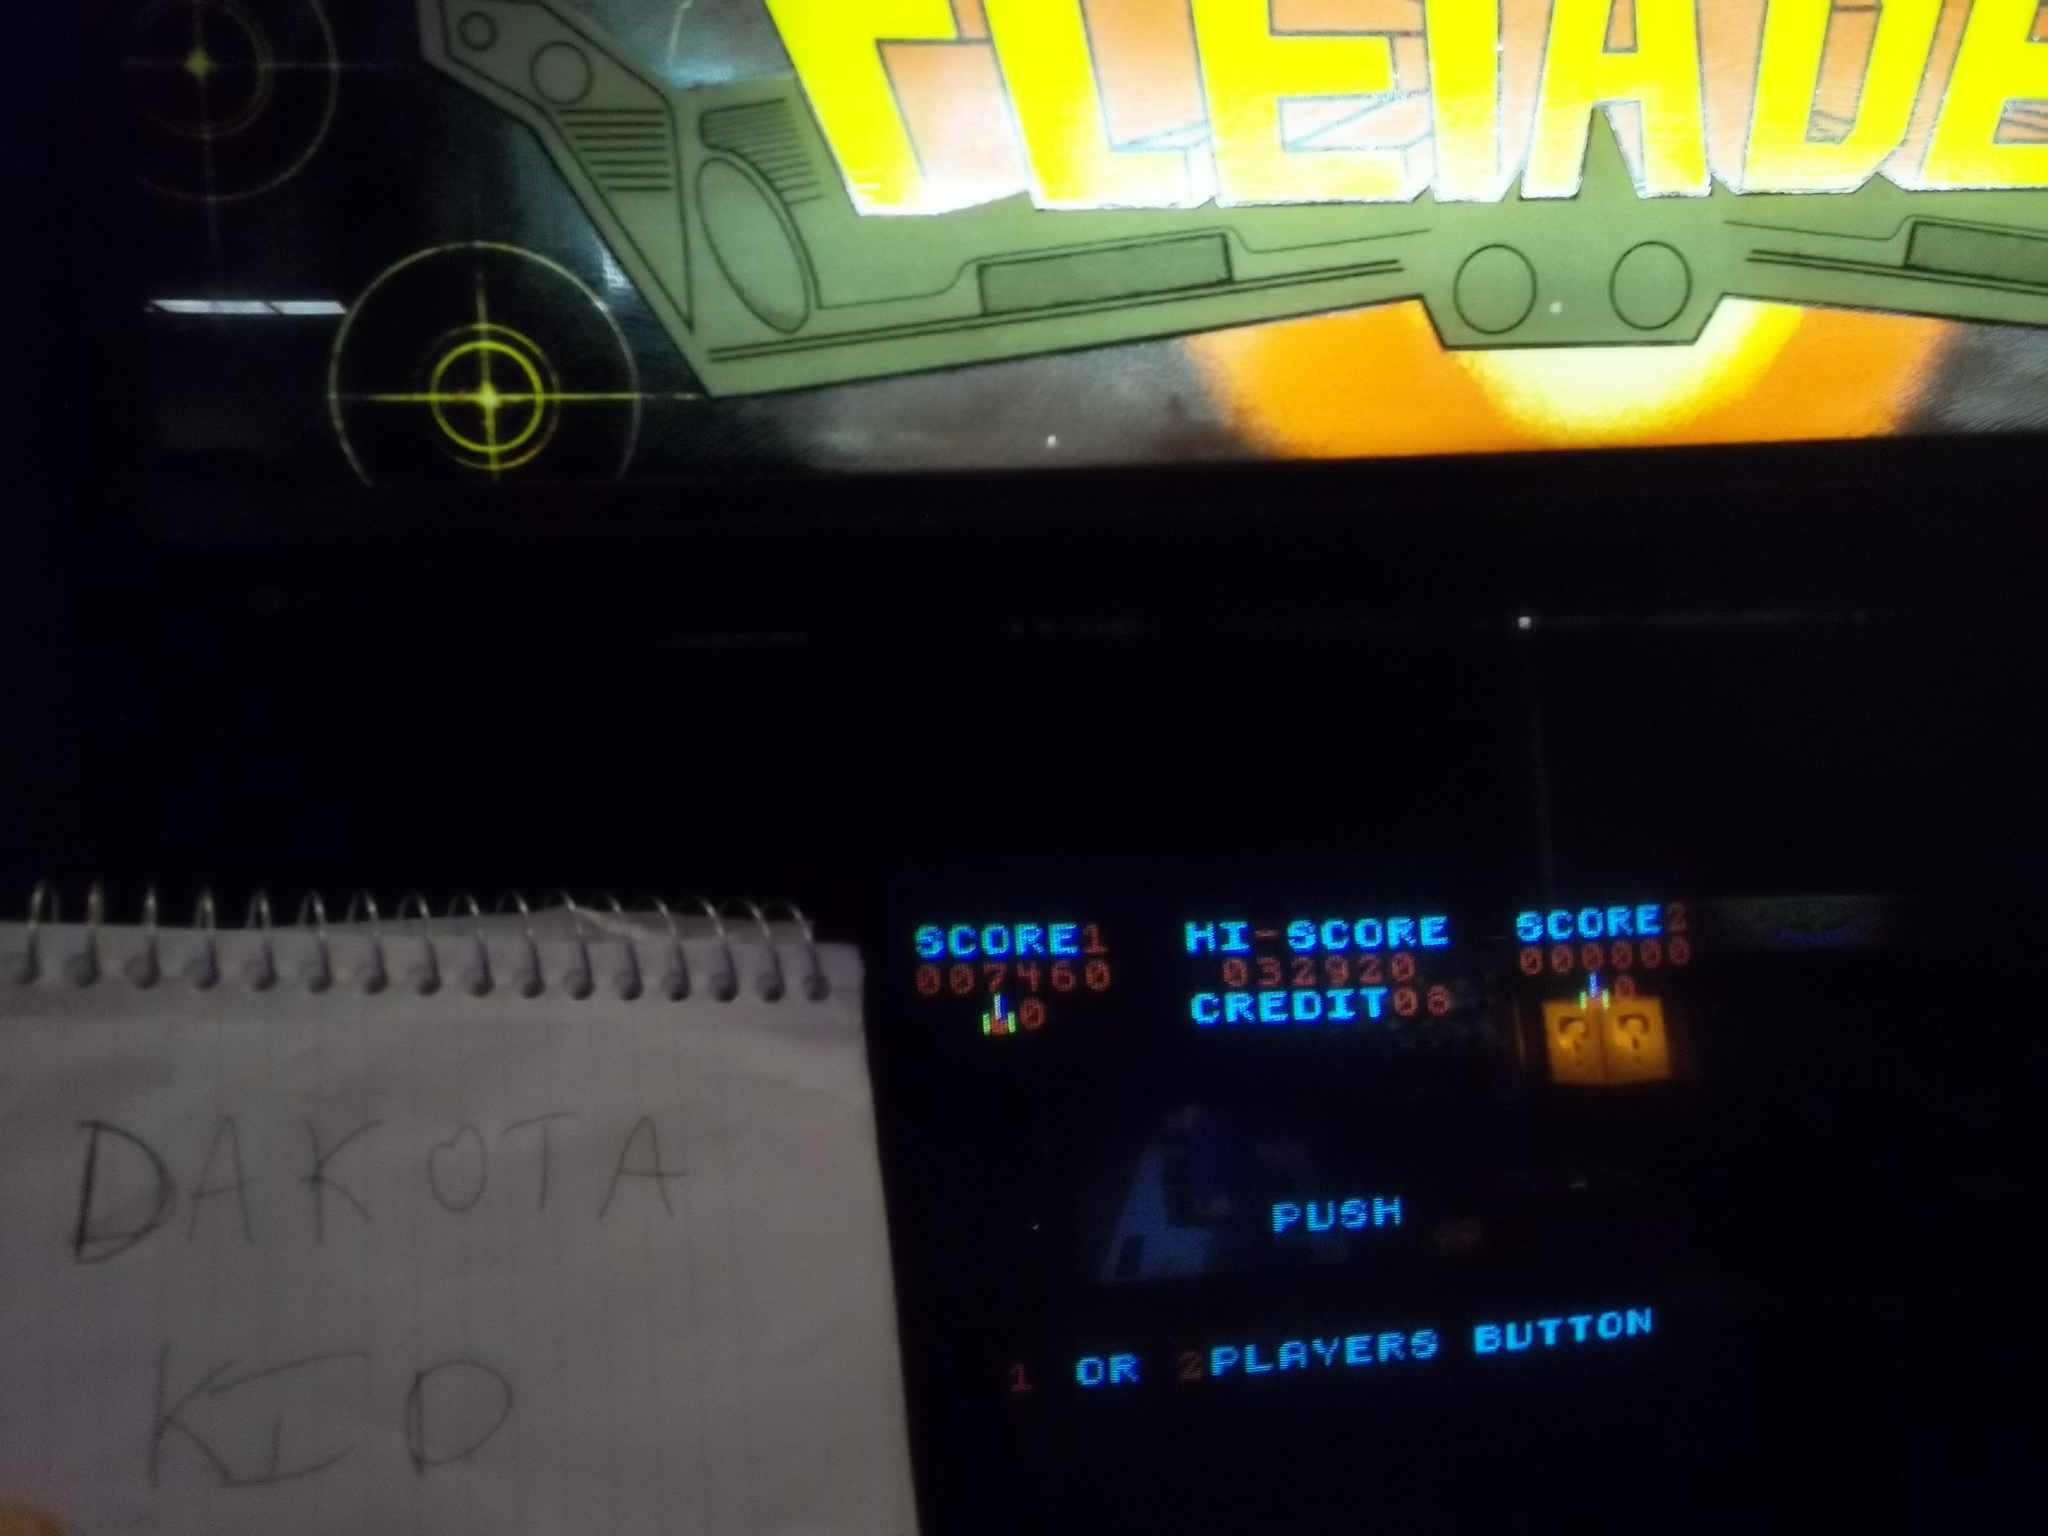 DakotaKid: Pleiades (Arcade) 7,460 points on 2017-05-26 10:55:04